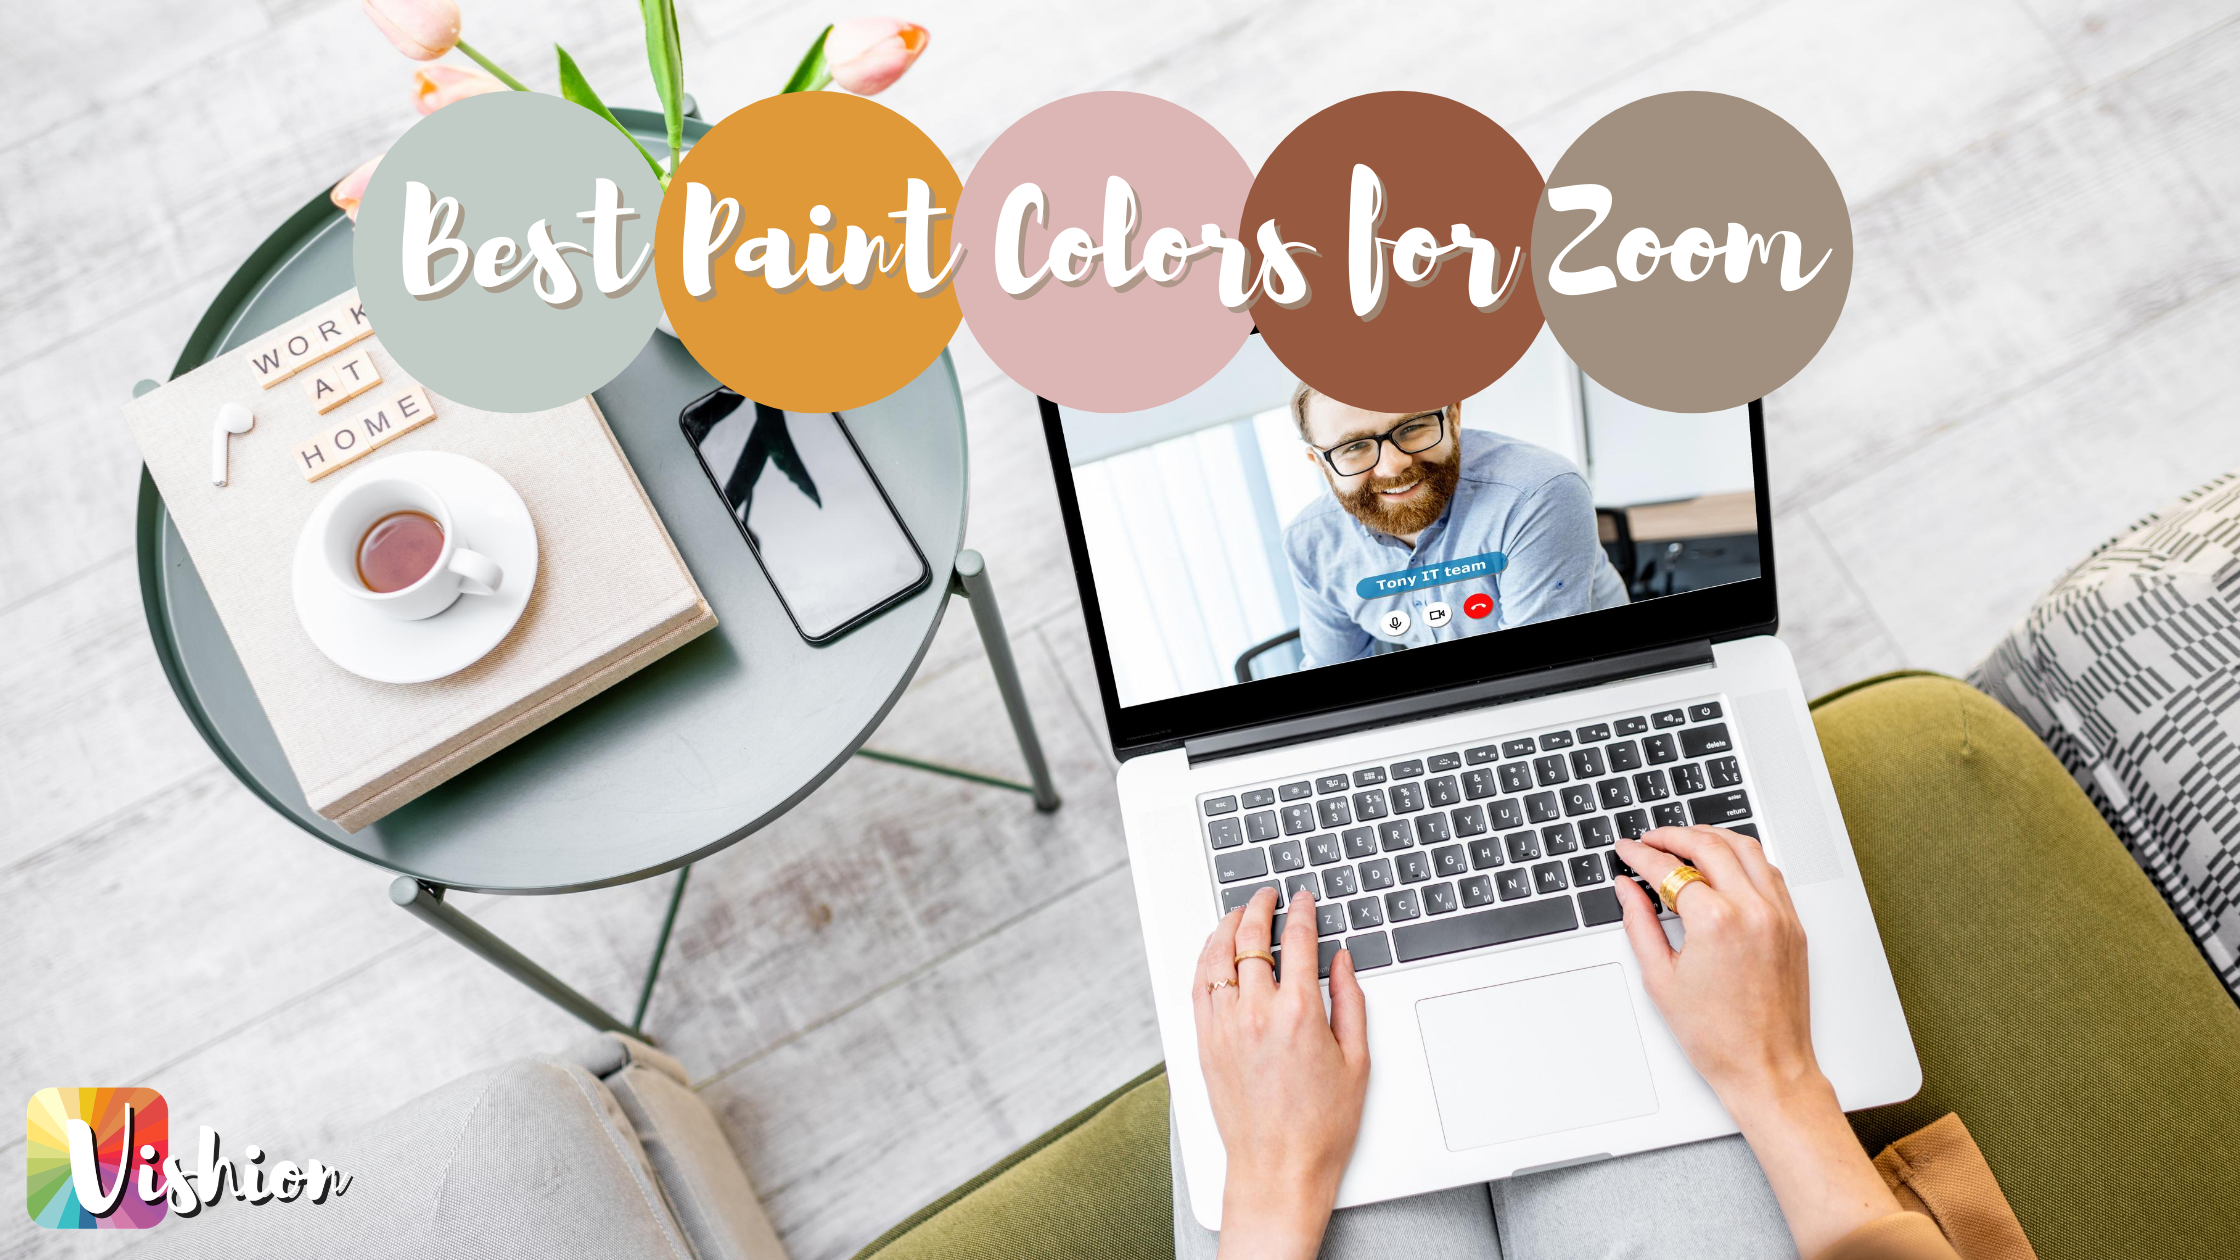 Best Paint Color for Zoom Graphic